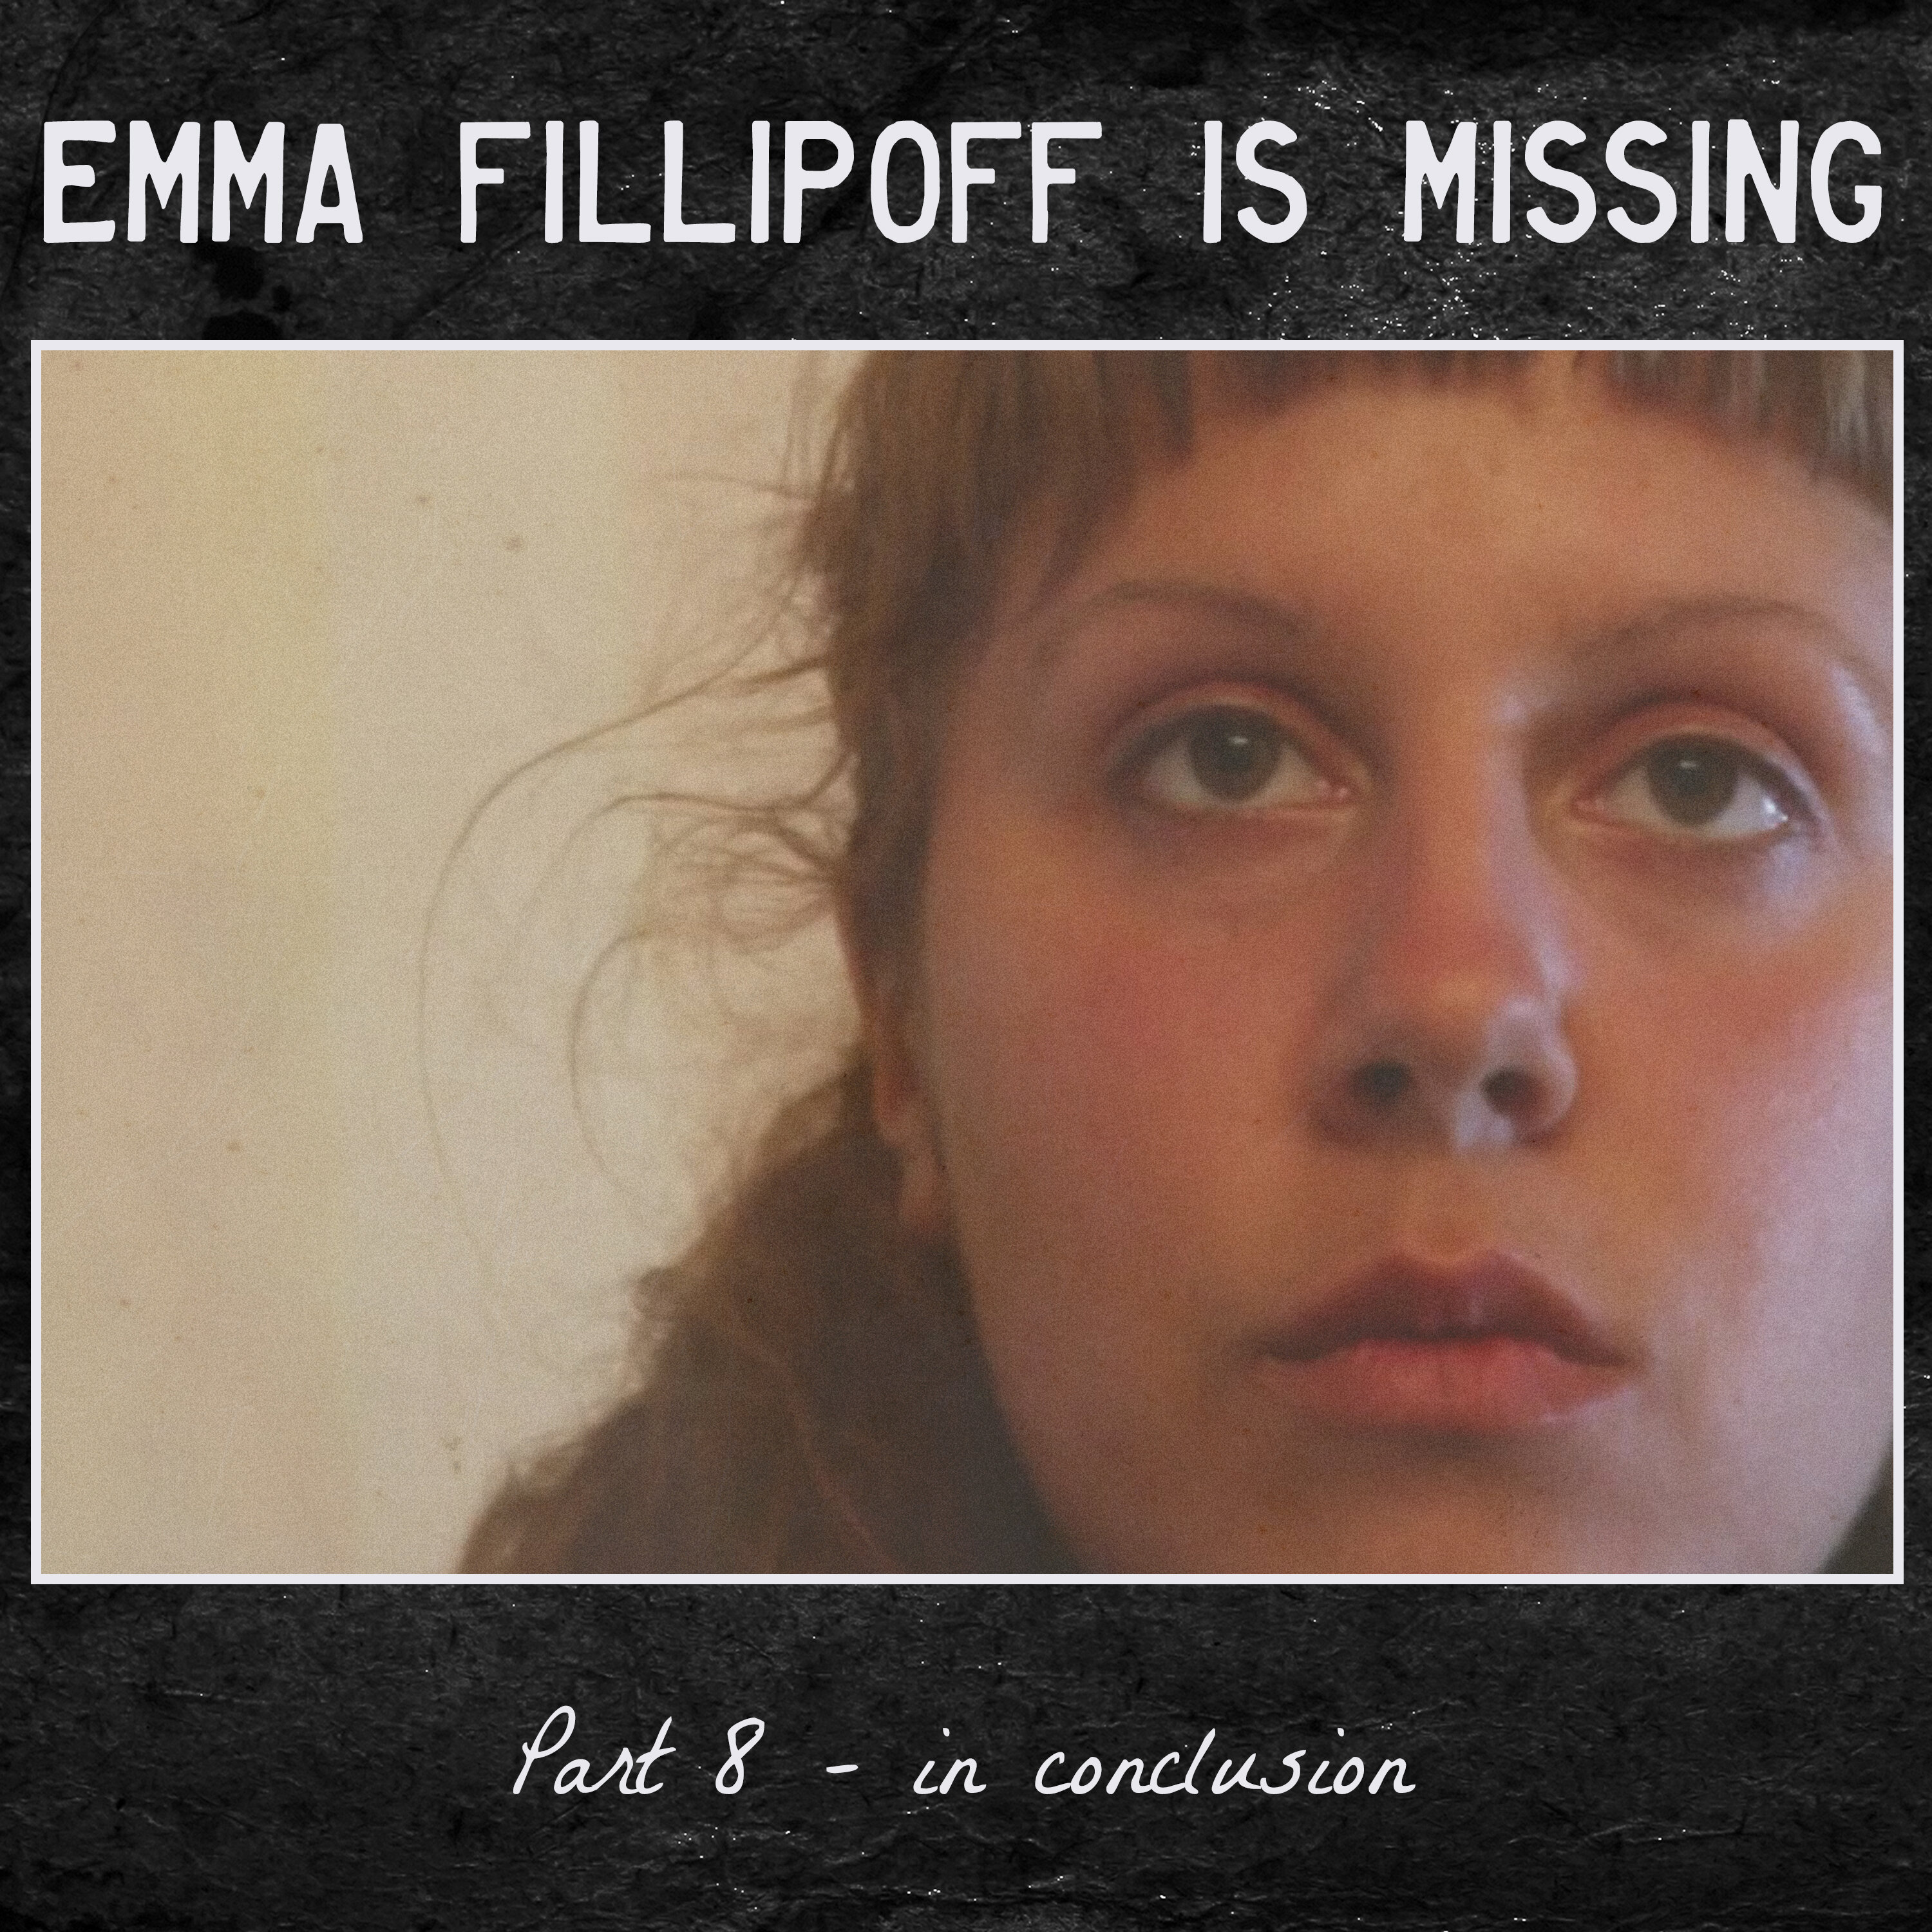 Emma Fillipoff is Missing - 8 - In Conclusion